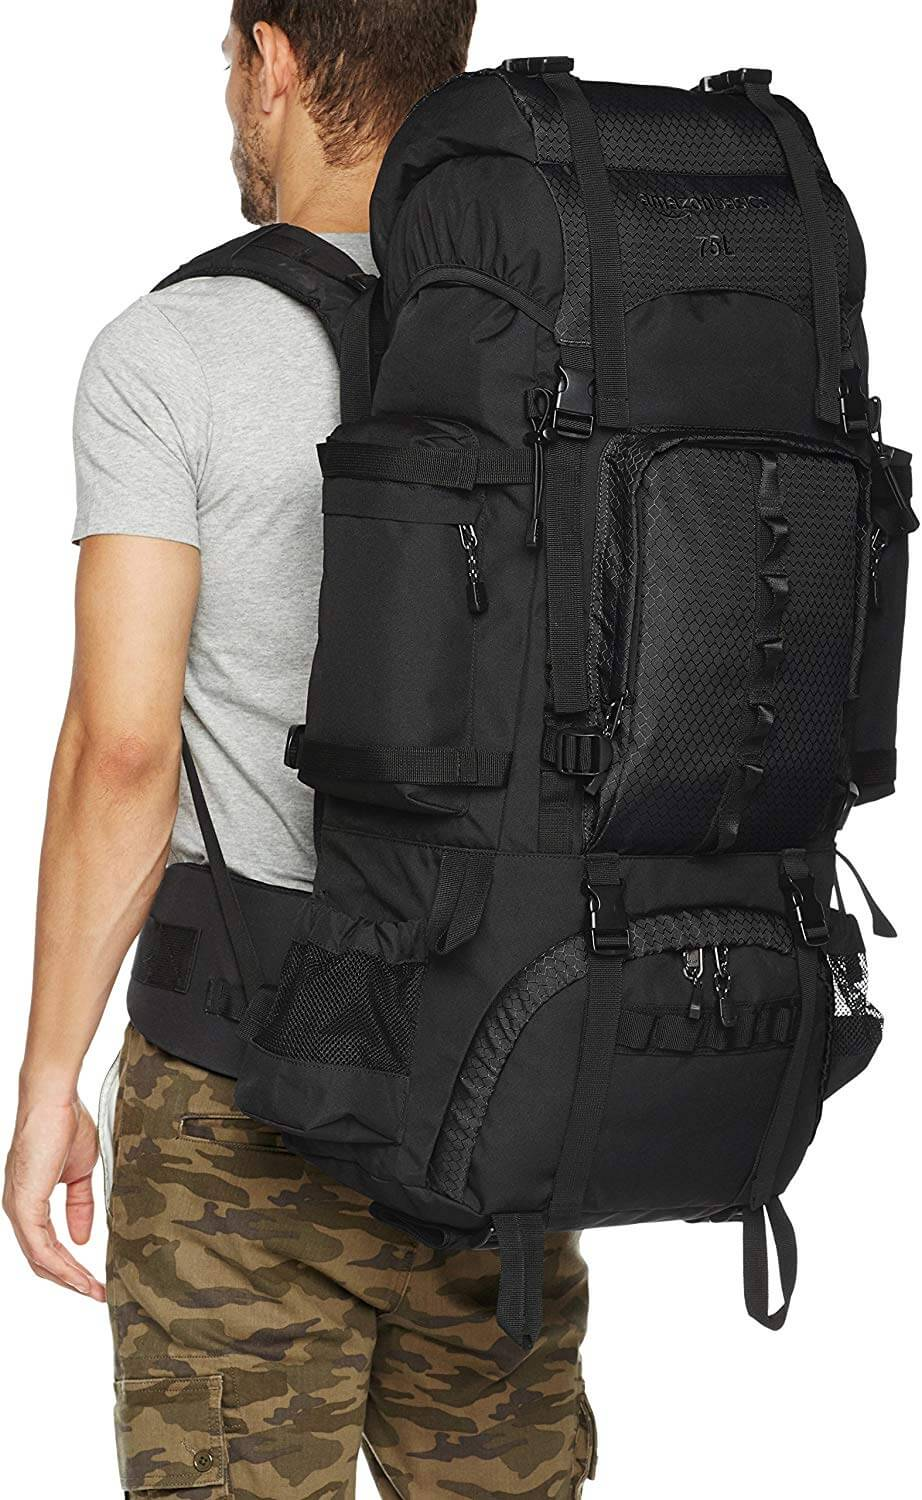 Amazon Basics Mens Hiking Backpack